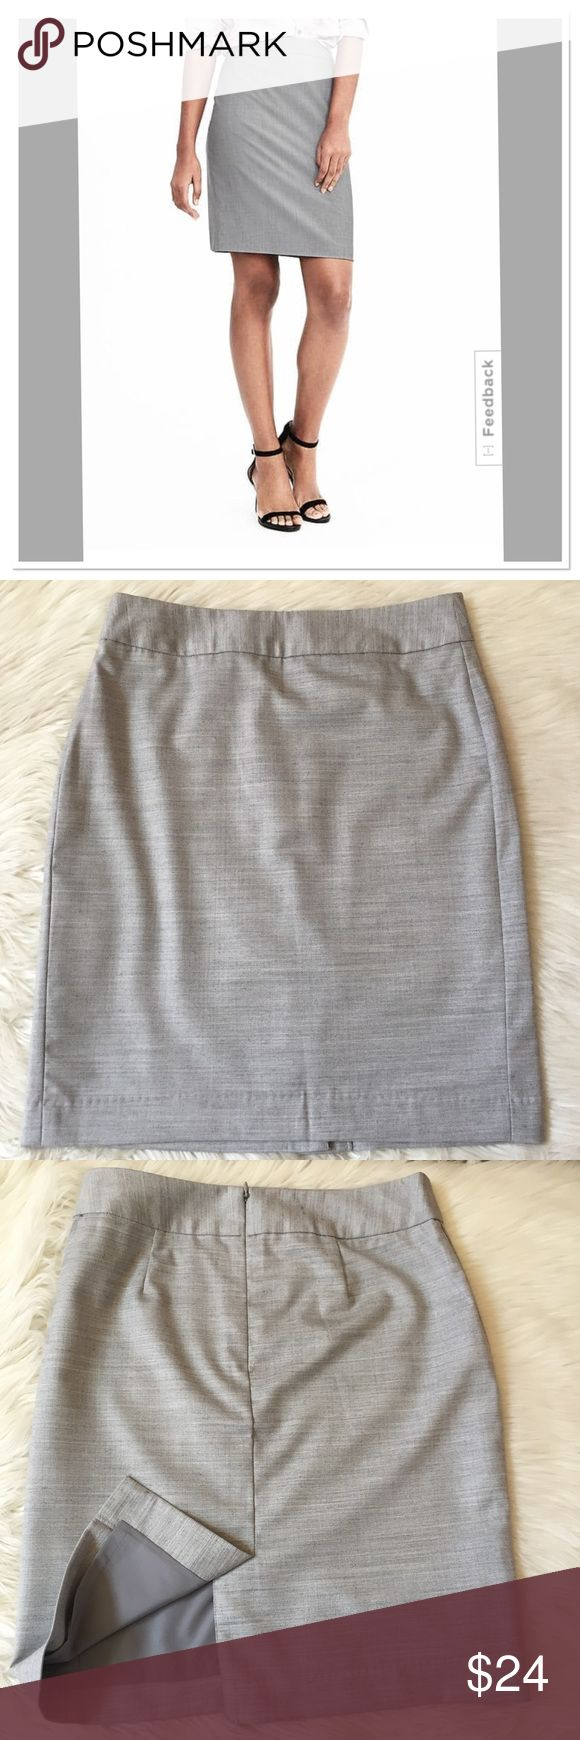 Banana Republic pencil skirt NWOT Gray herringbone style print .  Has a back zipper and slit.  Also has under lining.  It measures 19.5 inches in length.  New with out tags. Banana Republic Skirts Pencil